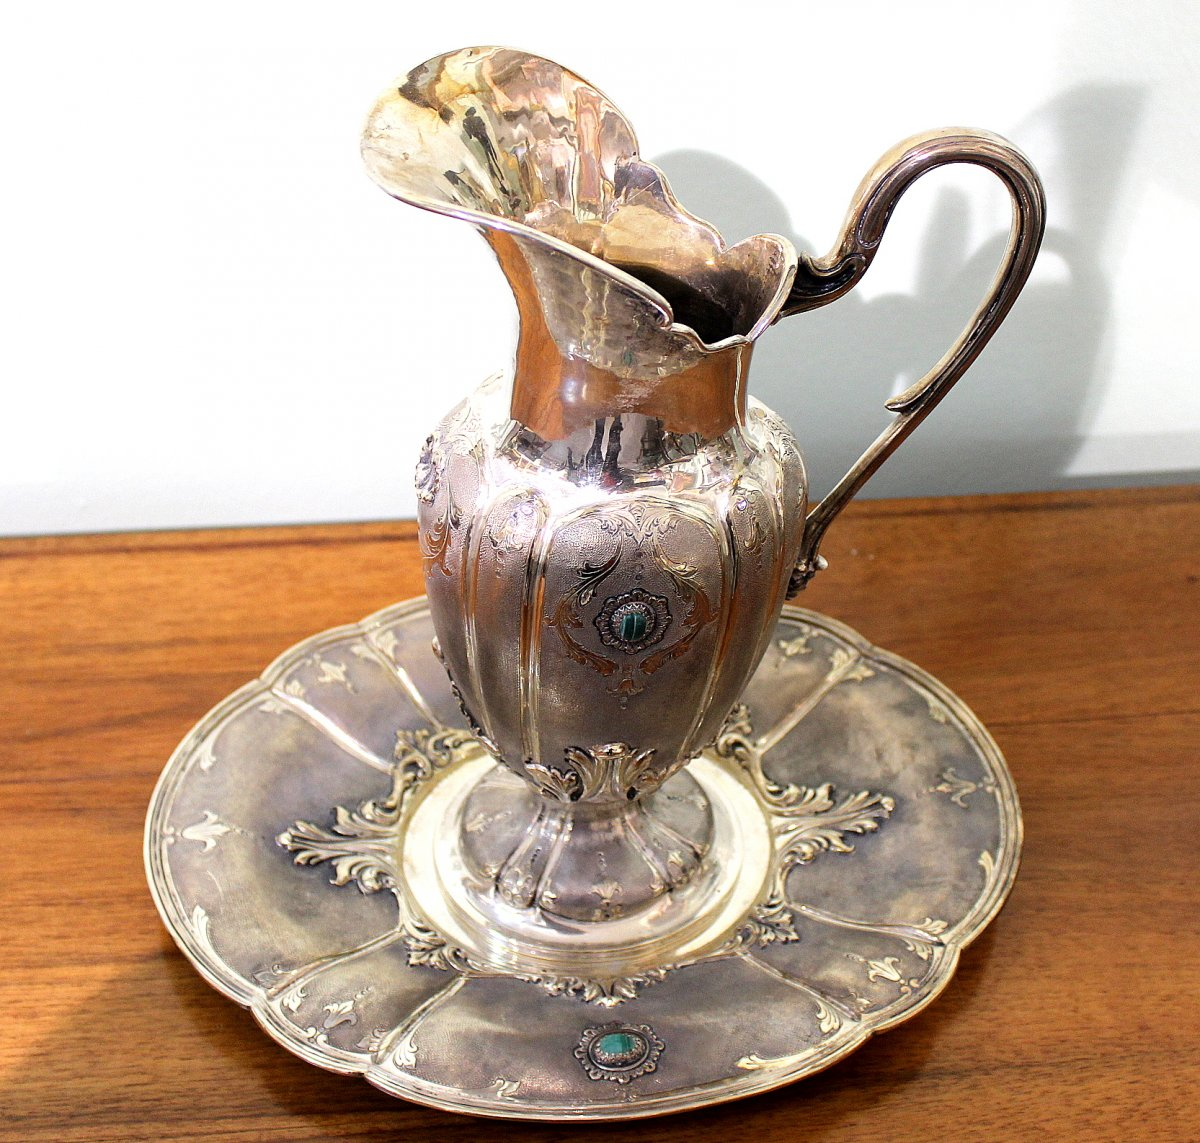 Silver Jug With A Silver Plate Decorated With Malachite